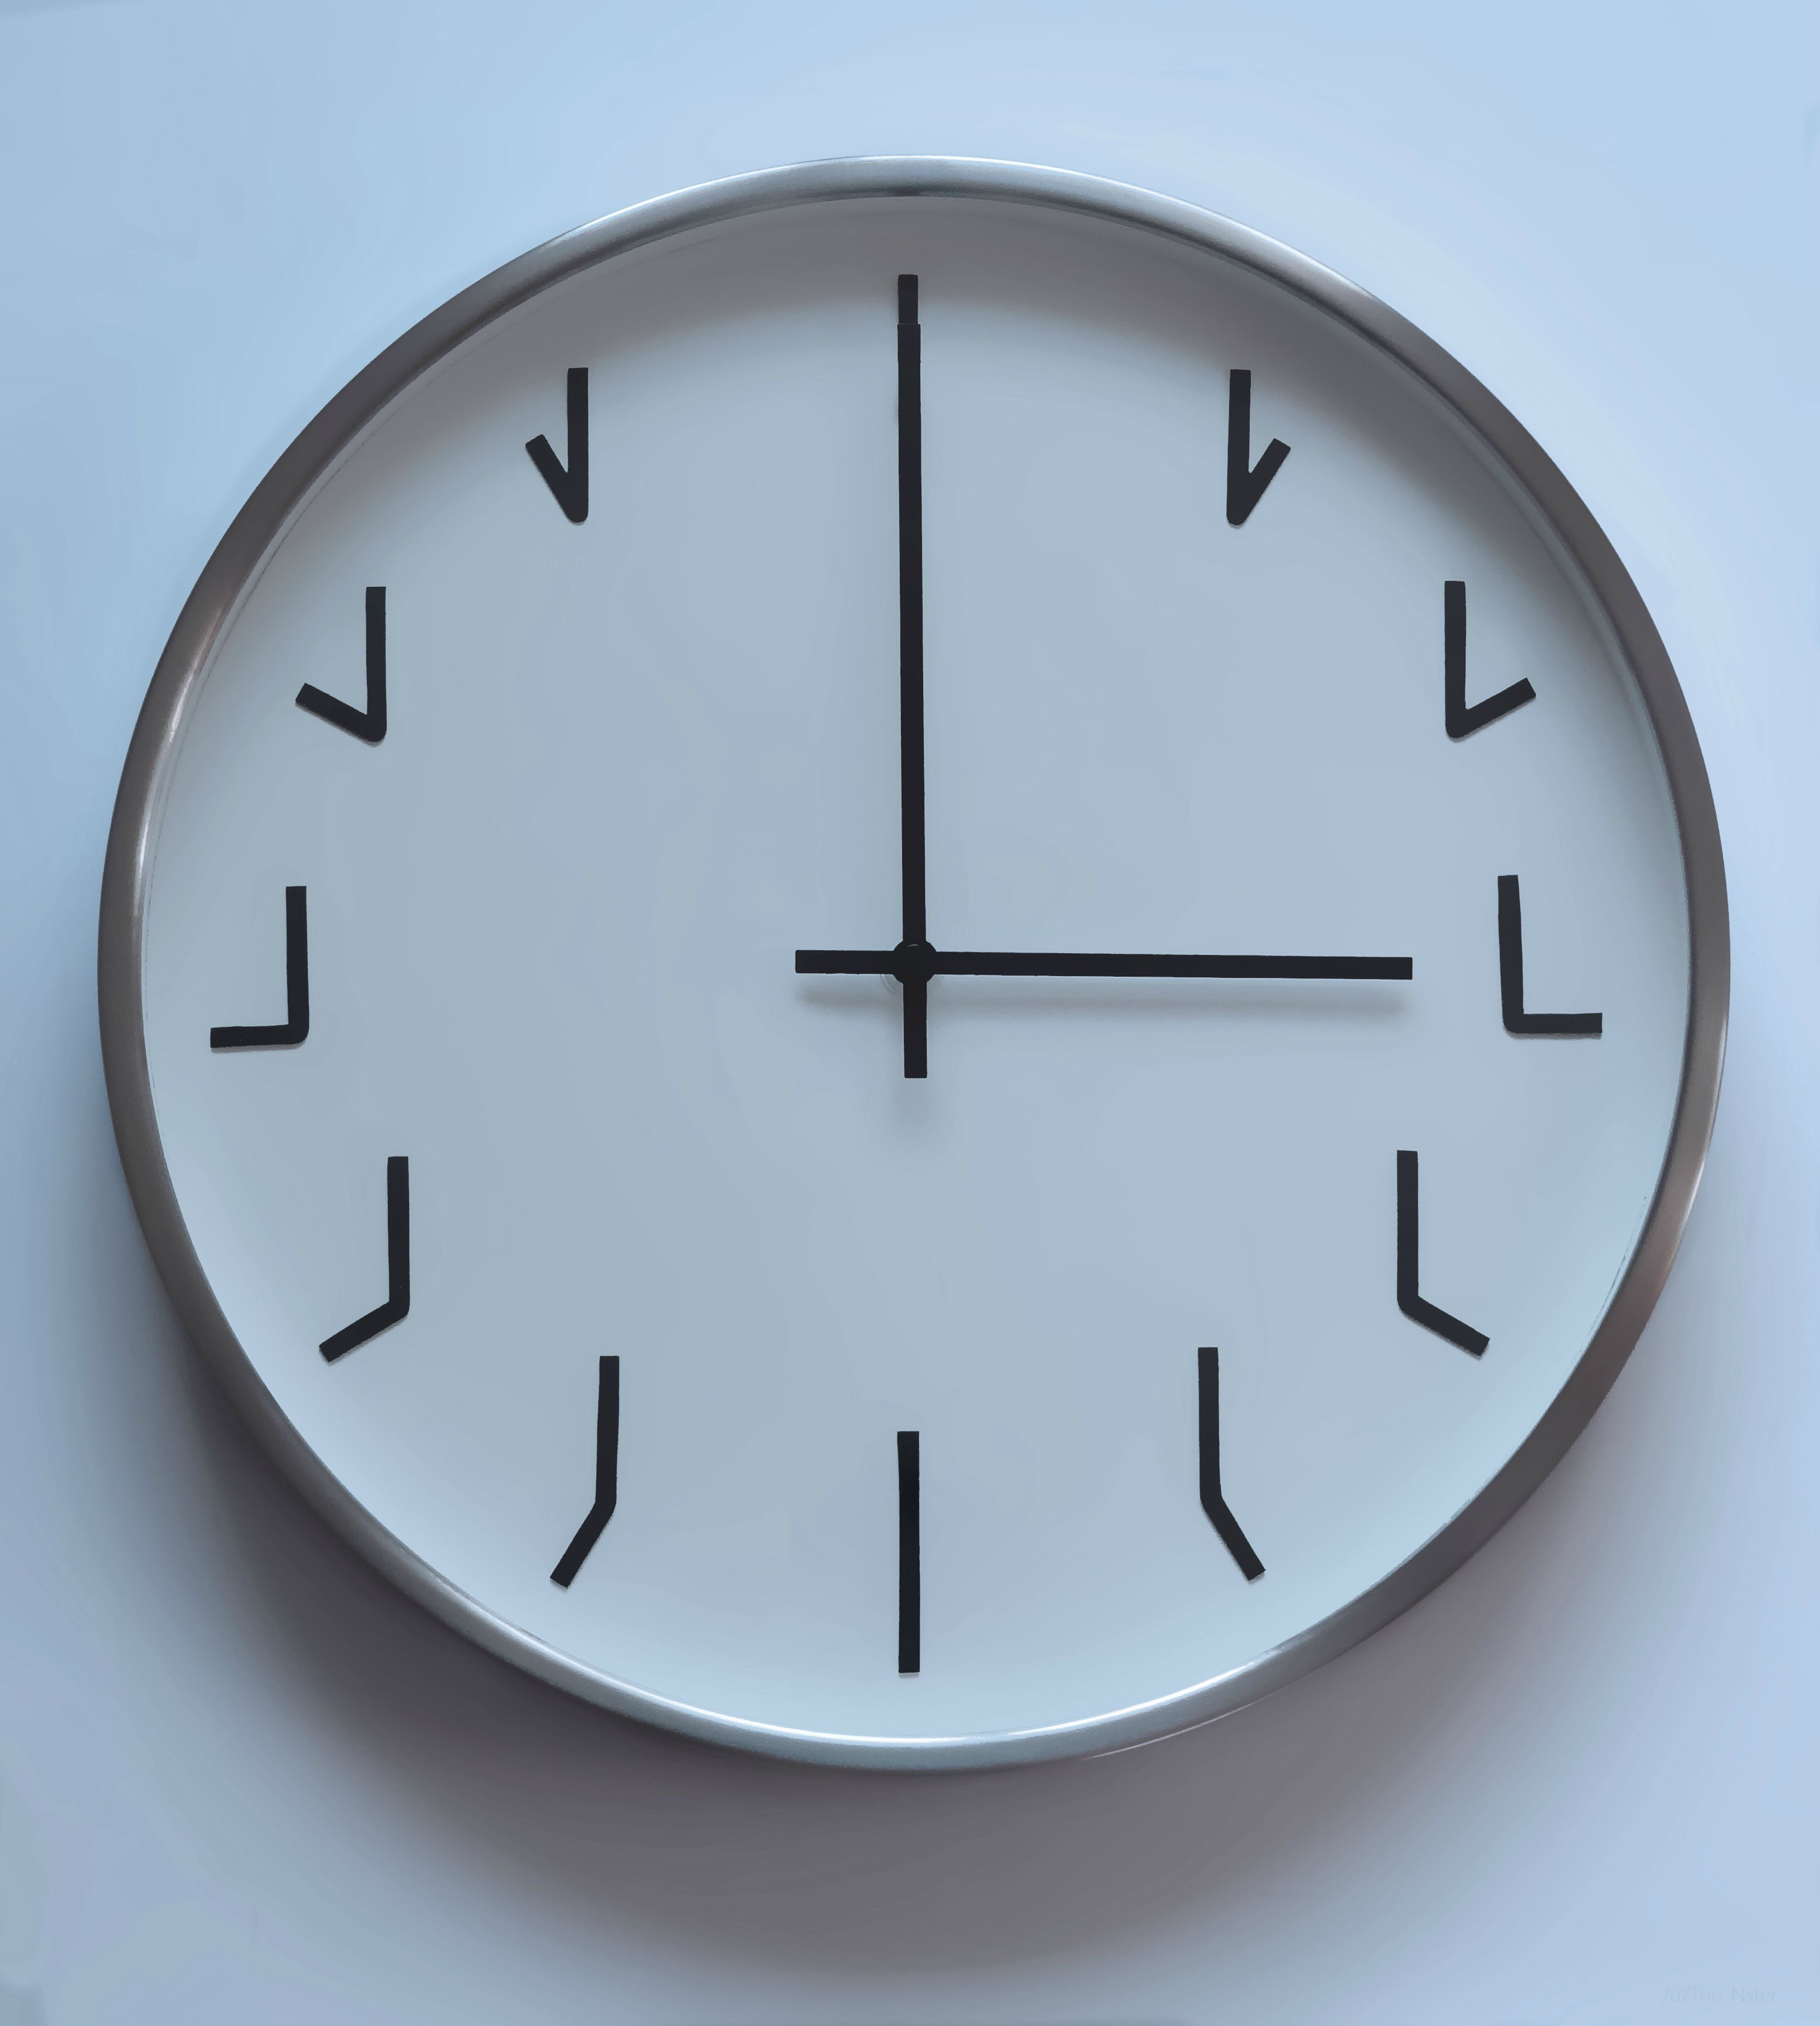 A Redundant Clock Objects Details Pinterest Horloge